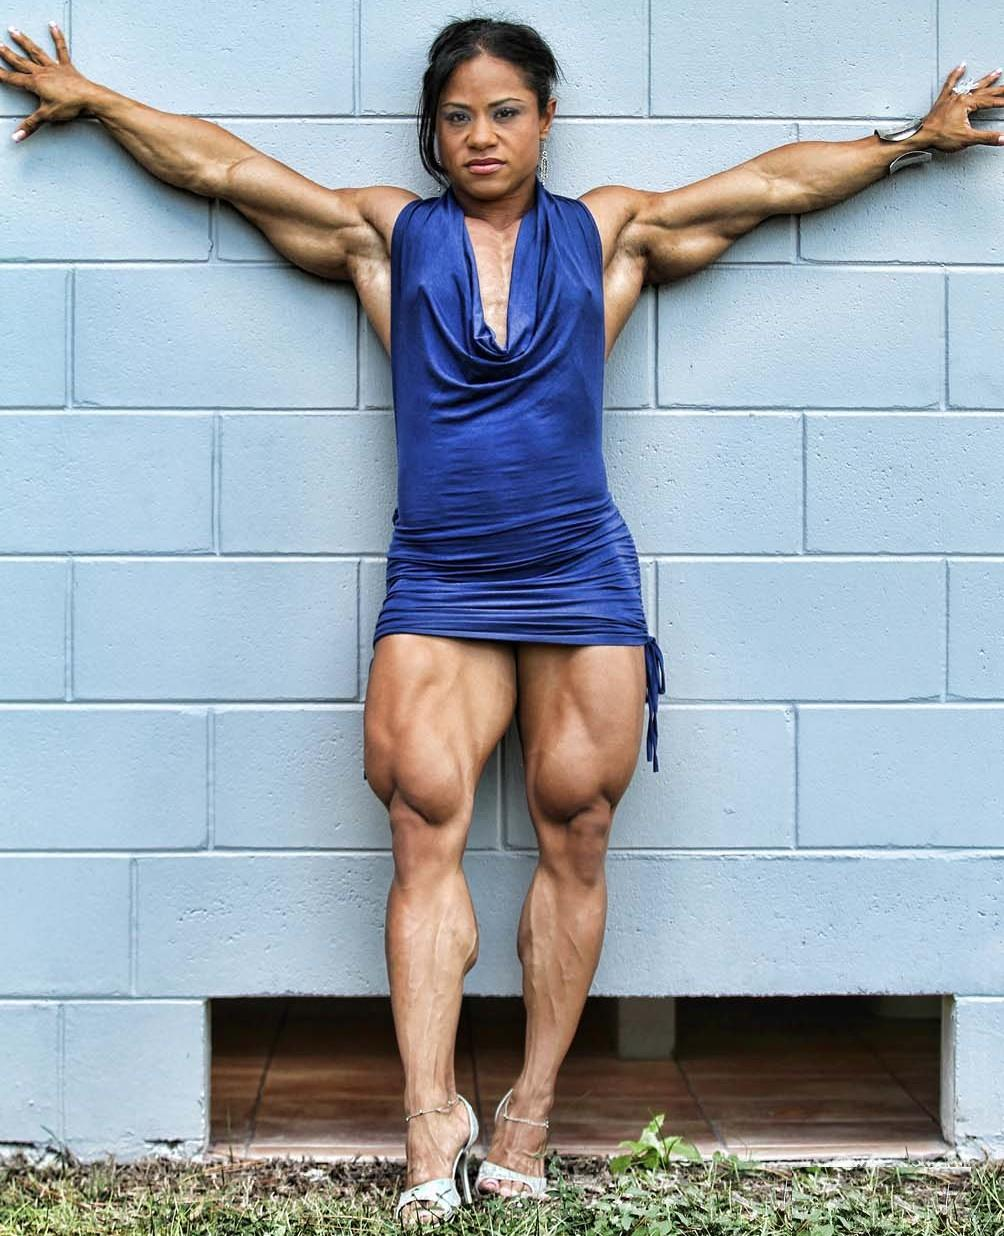 Muscle woman szex picture erotica photo